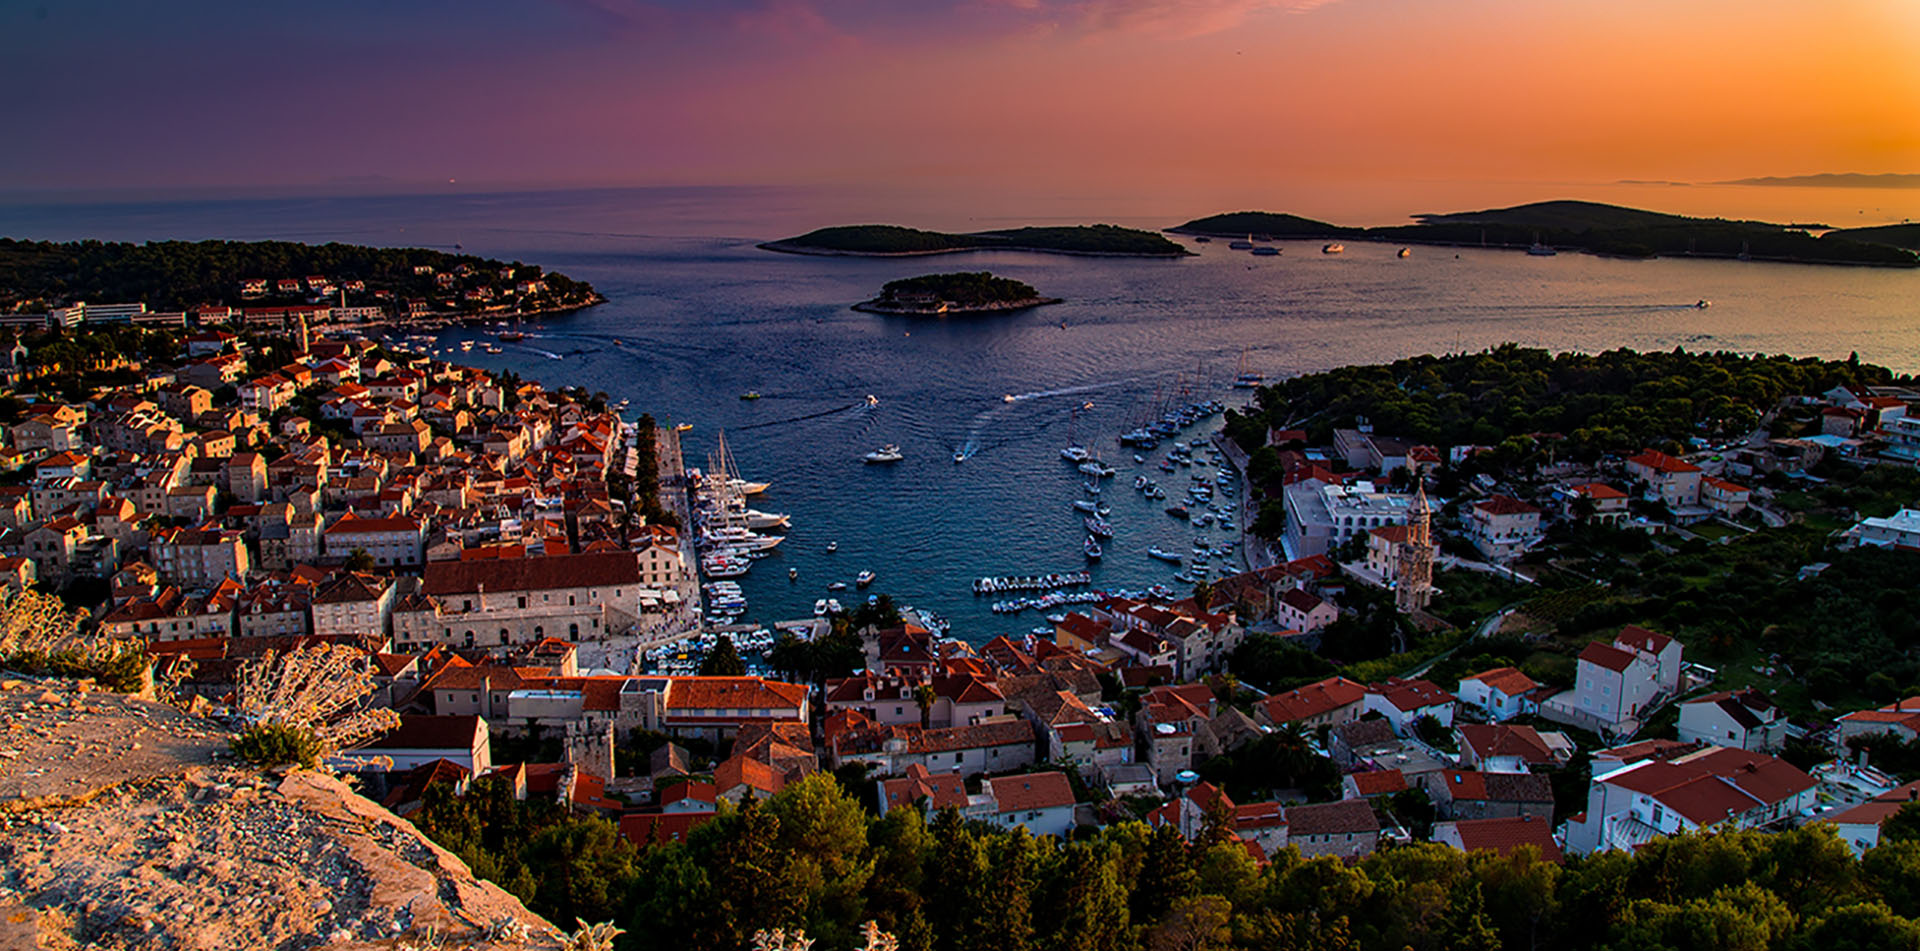 Hvar Harbor at Sunset, Croatia